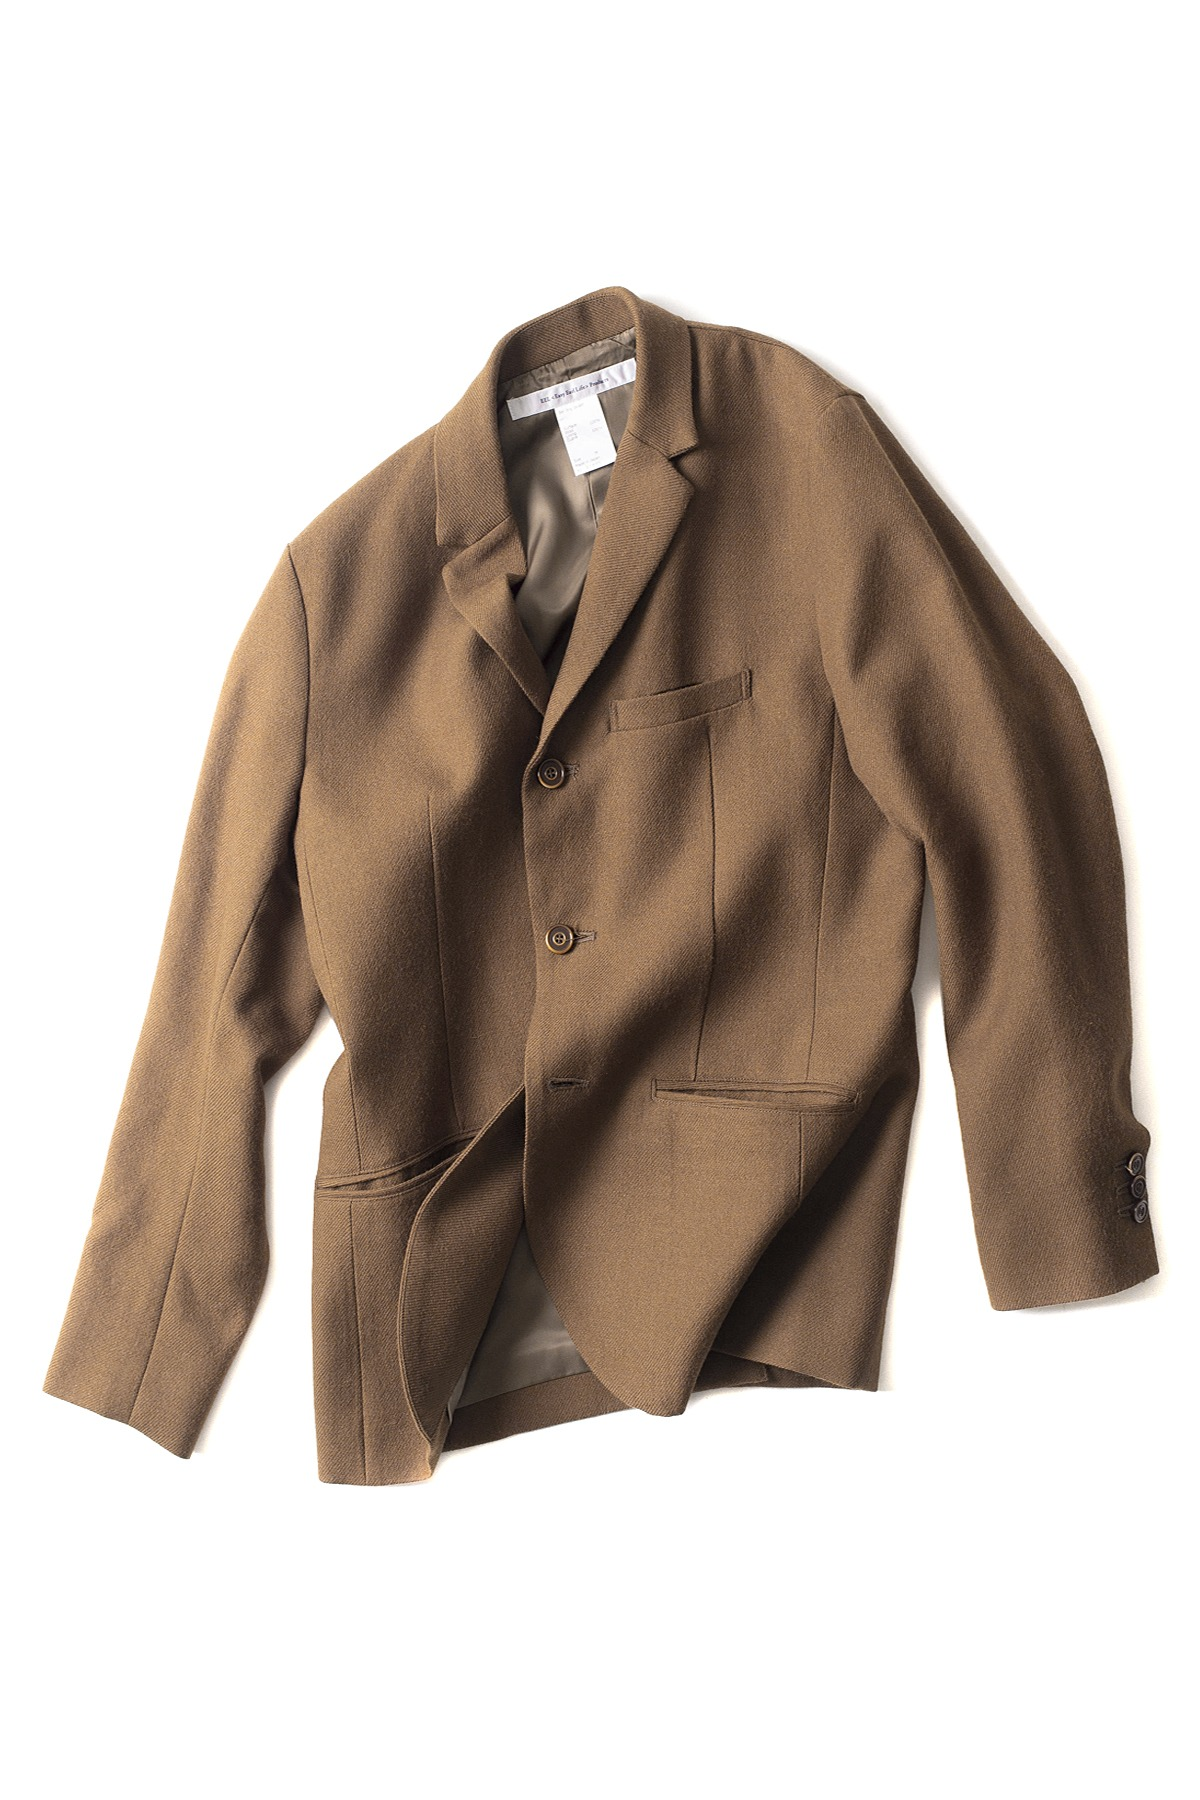 EEL : Bell Boy Jacket (Brown)